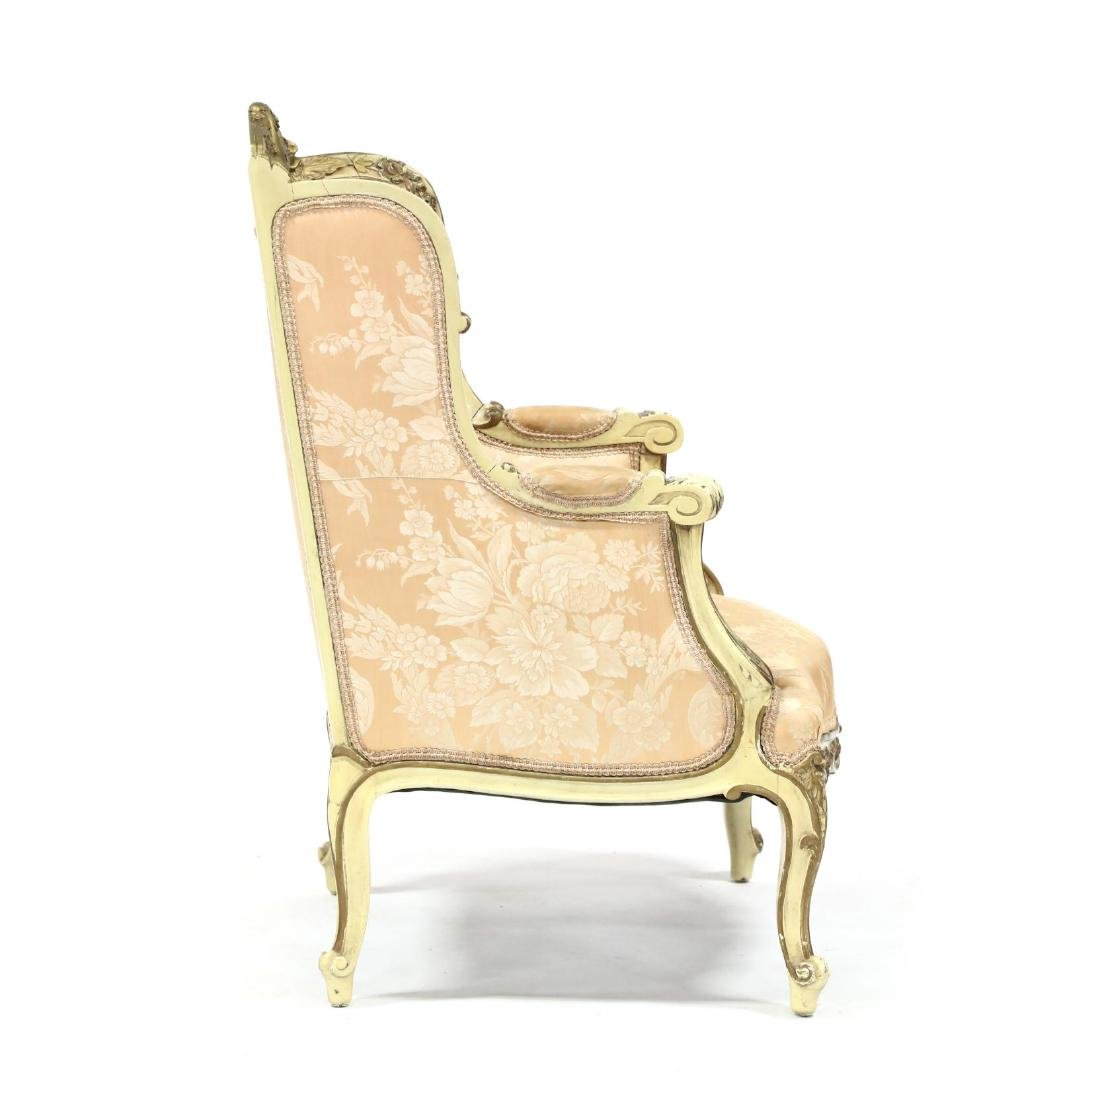 French Rococo Style Carved and Painted Bergere - 3